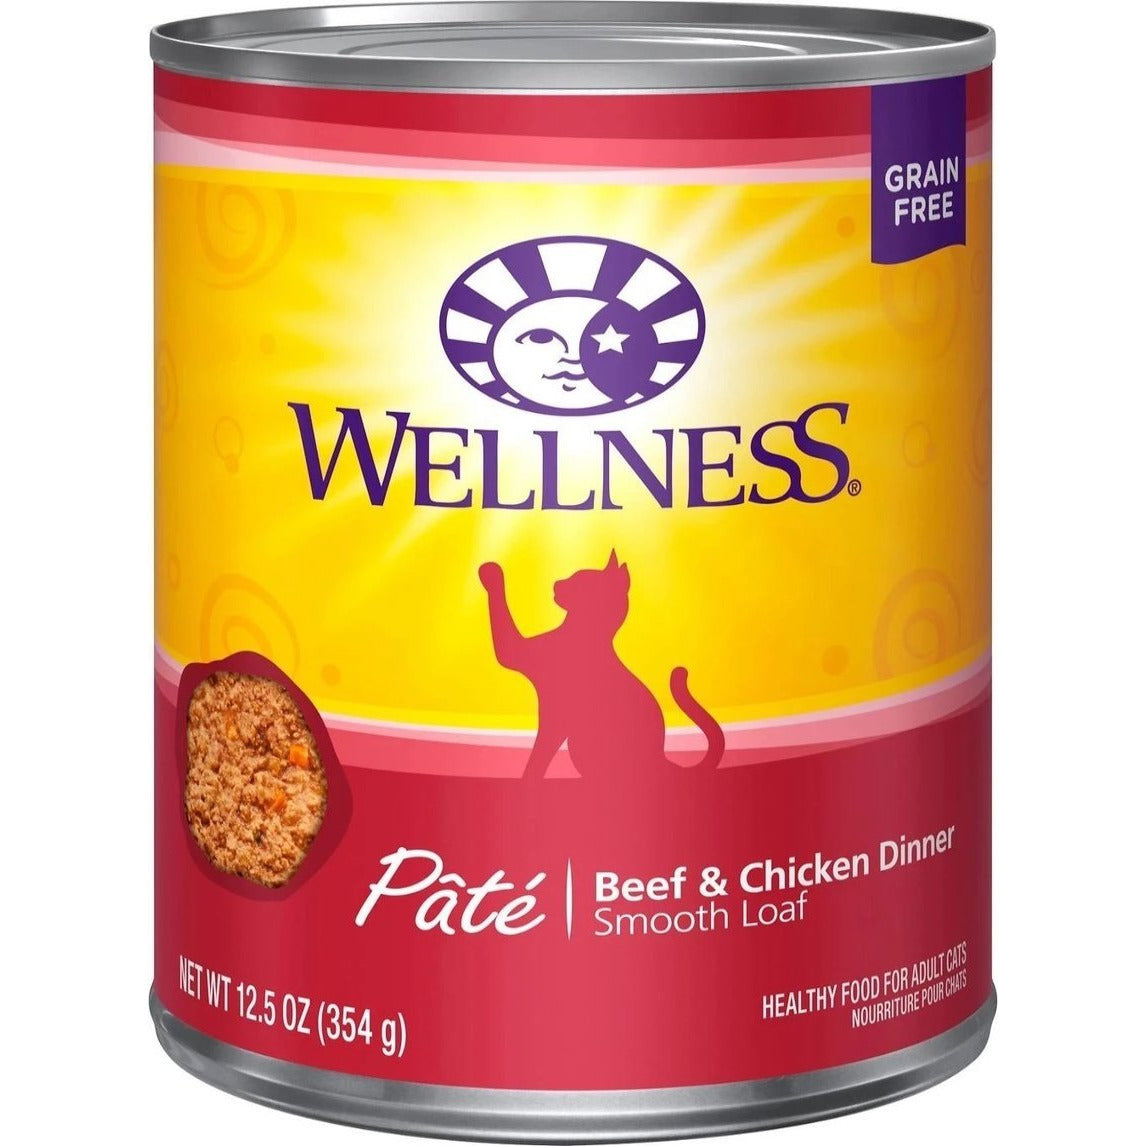 Wellness - Pâté Beef & Chicken Dinner Wet Canned Cat Food (12.5oz)